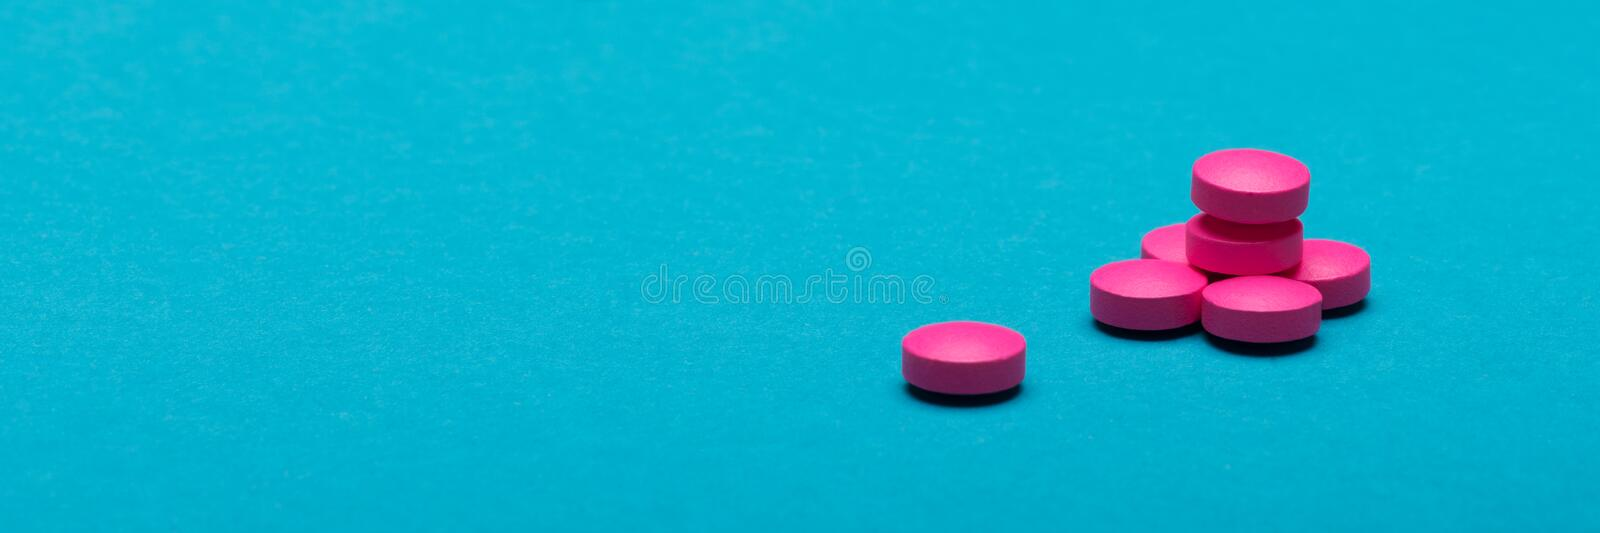 Bright pink pills on dark blue coloured background. Medication and prescription pills web banner. stock photo